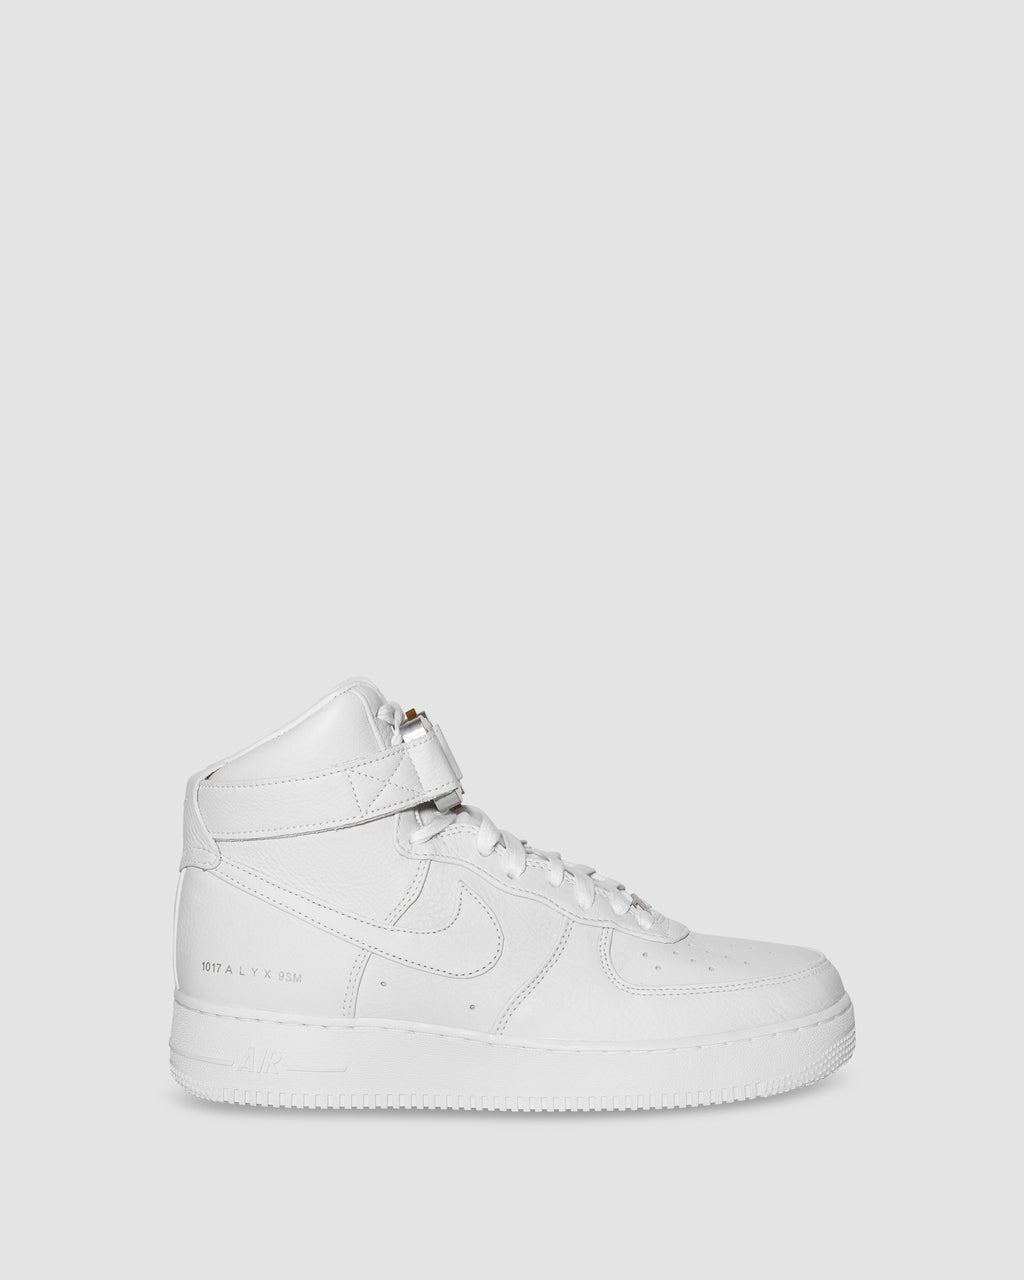 AIR FORCE 1 HI / ALYX